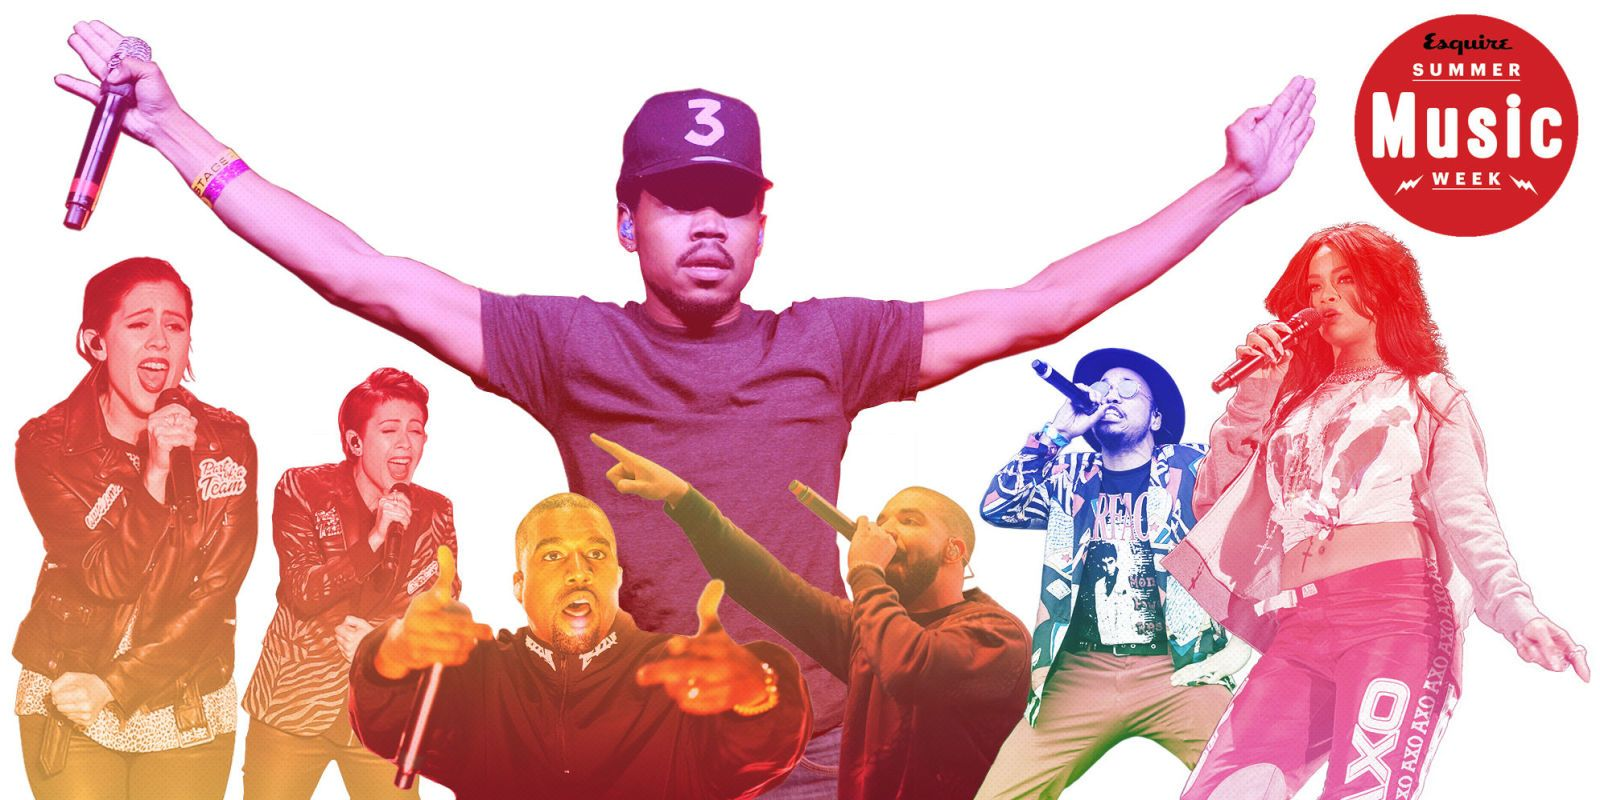 Here They Are: The 20 Songs You'll Be Listening to All Summer